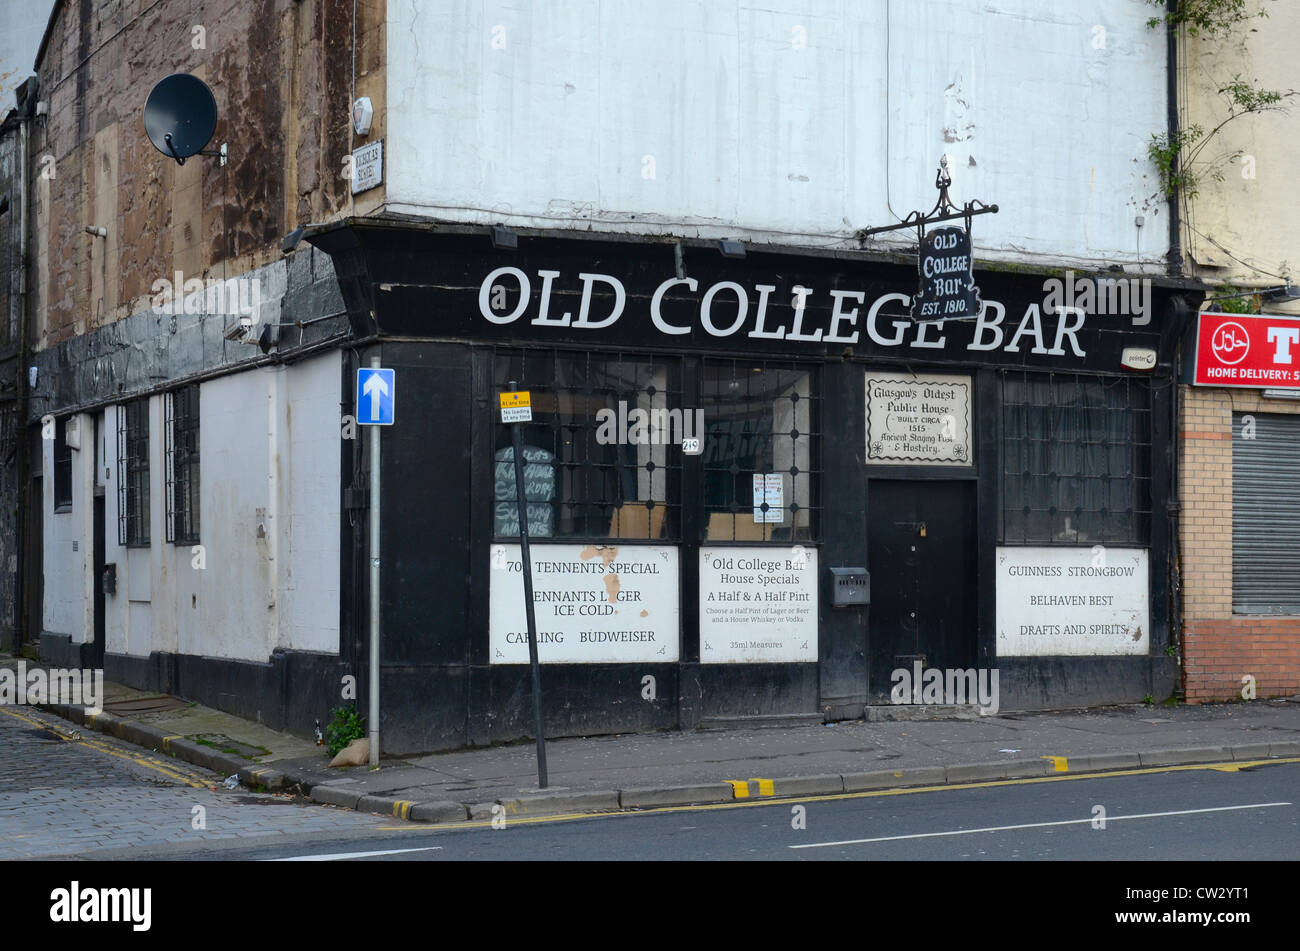 The Old College Bar (est. 1810) in Glasgow's High Street on the edge of the Merchant City area. - Stock Image